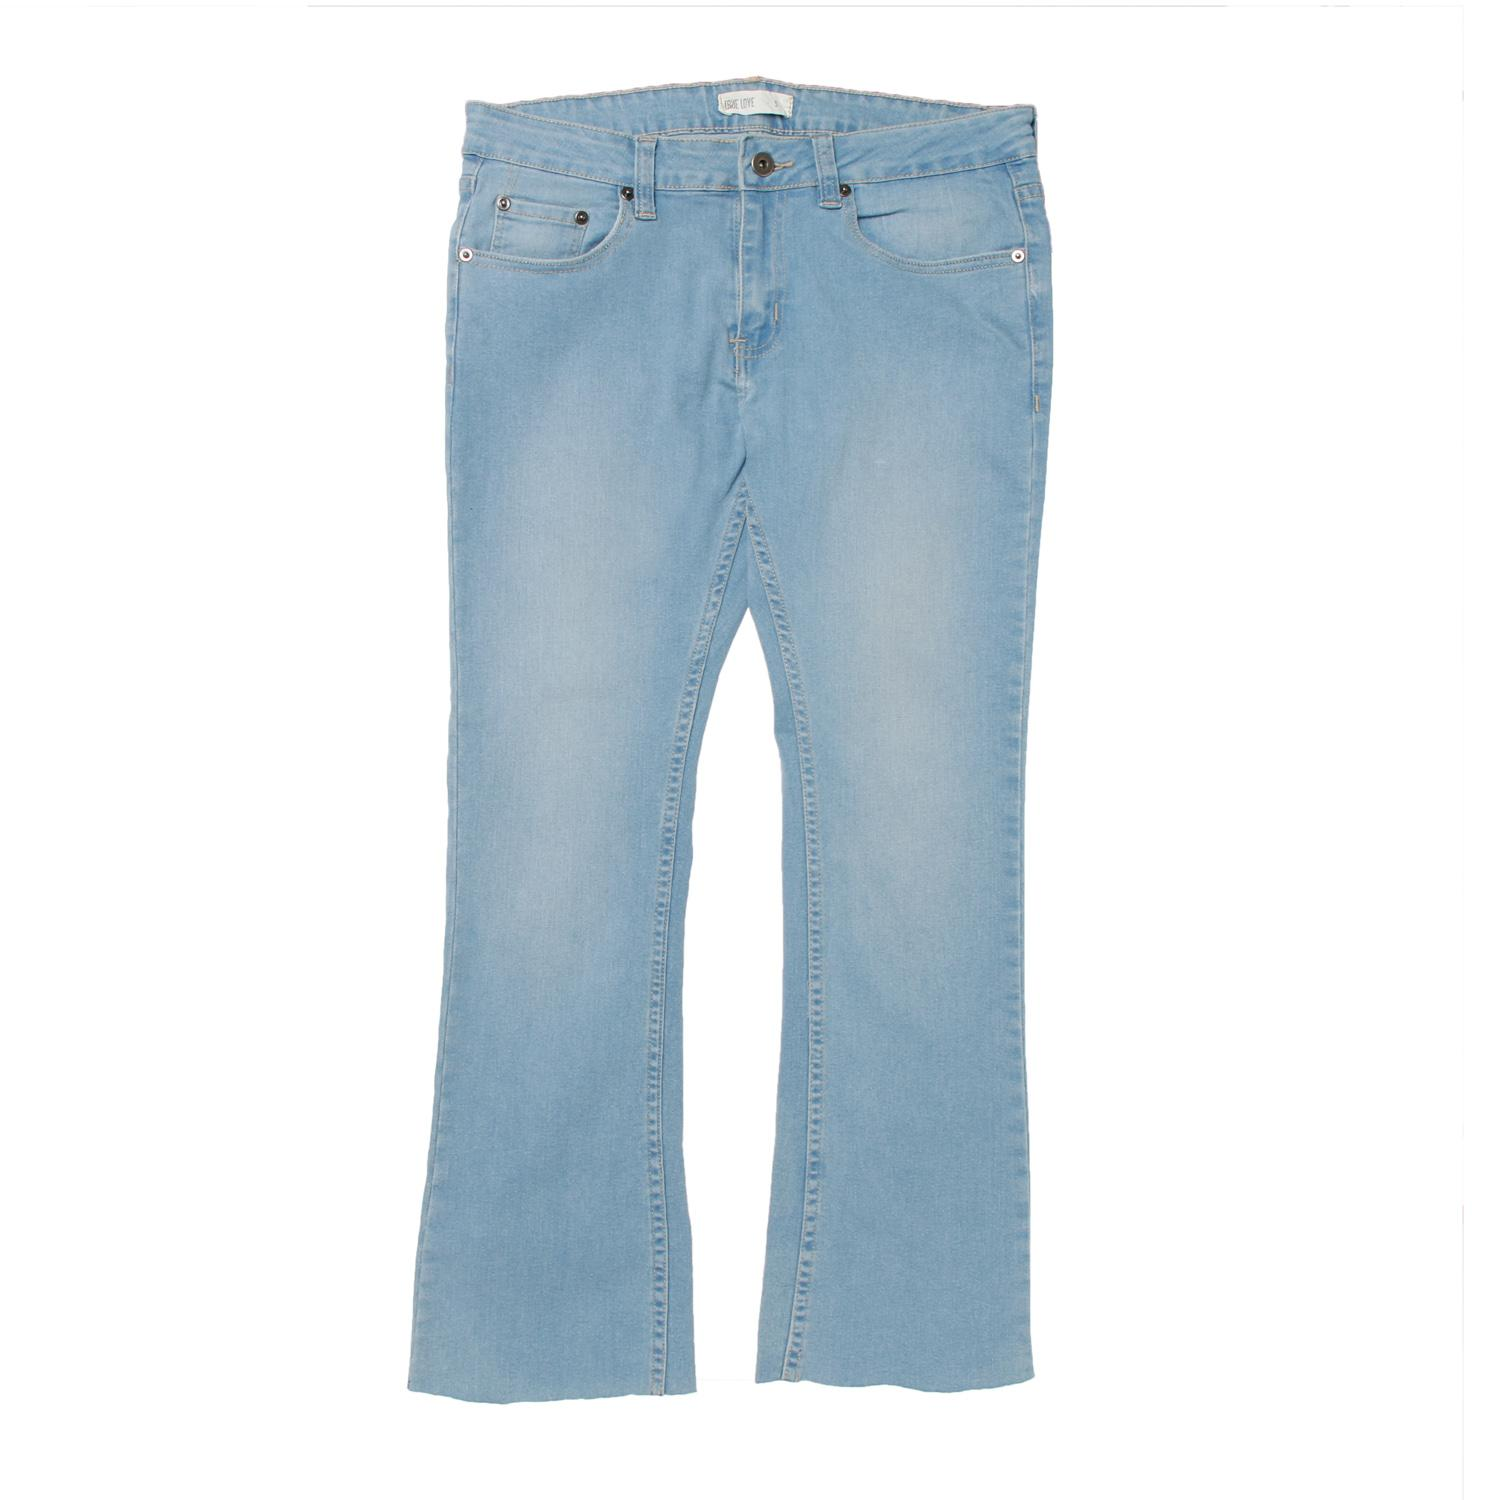 d63786f74c0b88 GTW True Love Philippines: GTW True Love price list - Jeans for ...